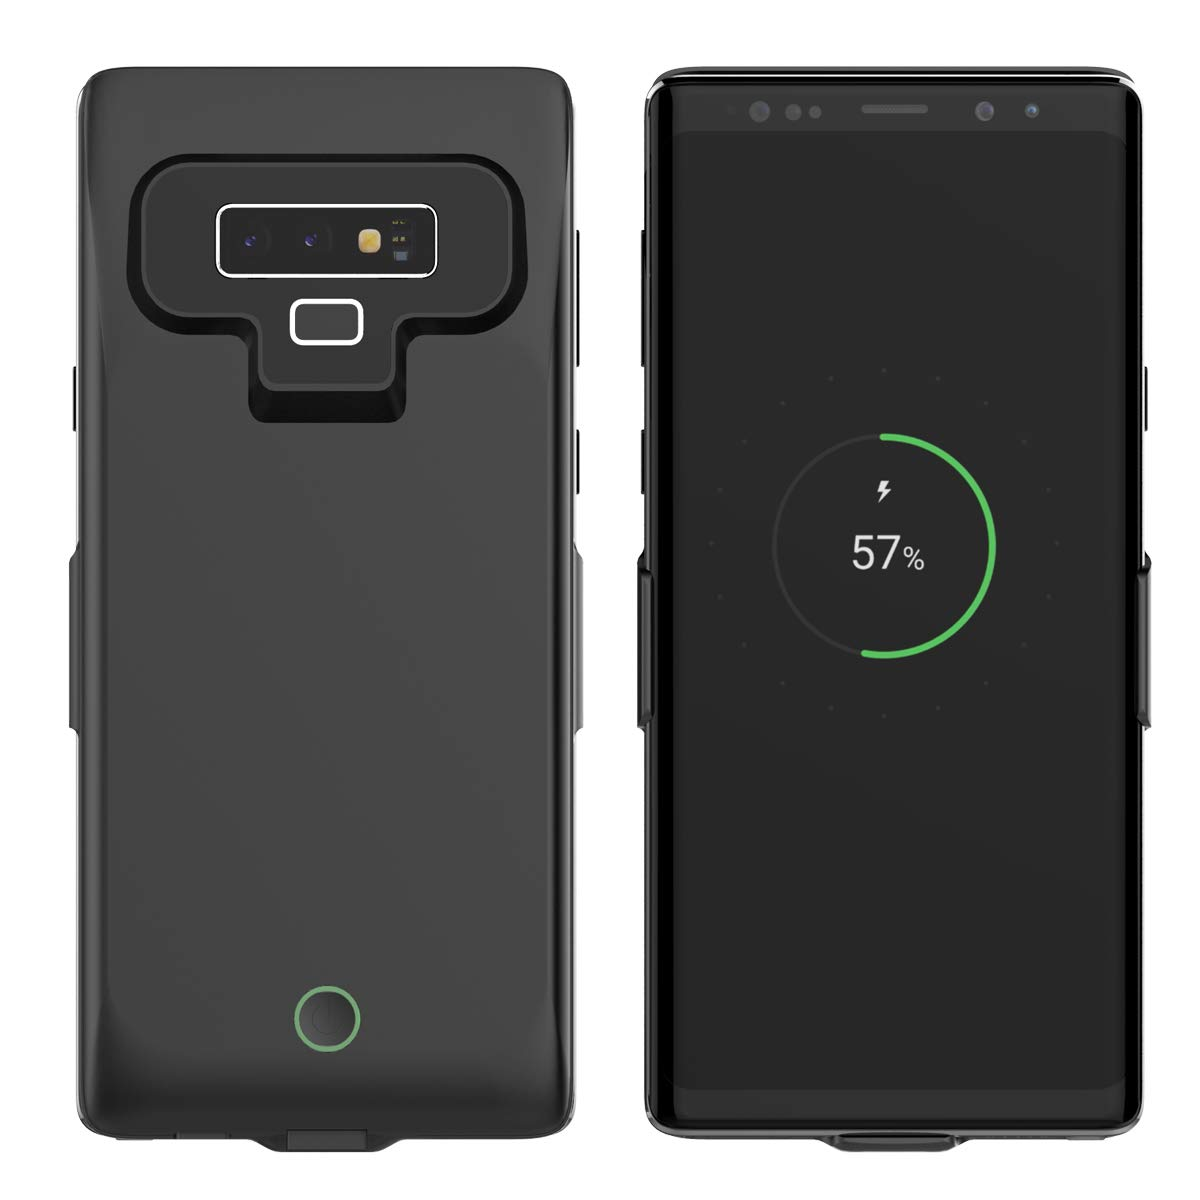 Codream Samsung Galaxy Note 9 Battery Battery Case, Grip External Protective Battery ccover Compatible with Samsung Galaxy Note 9 Battery Juice Case [Grip ] - Black